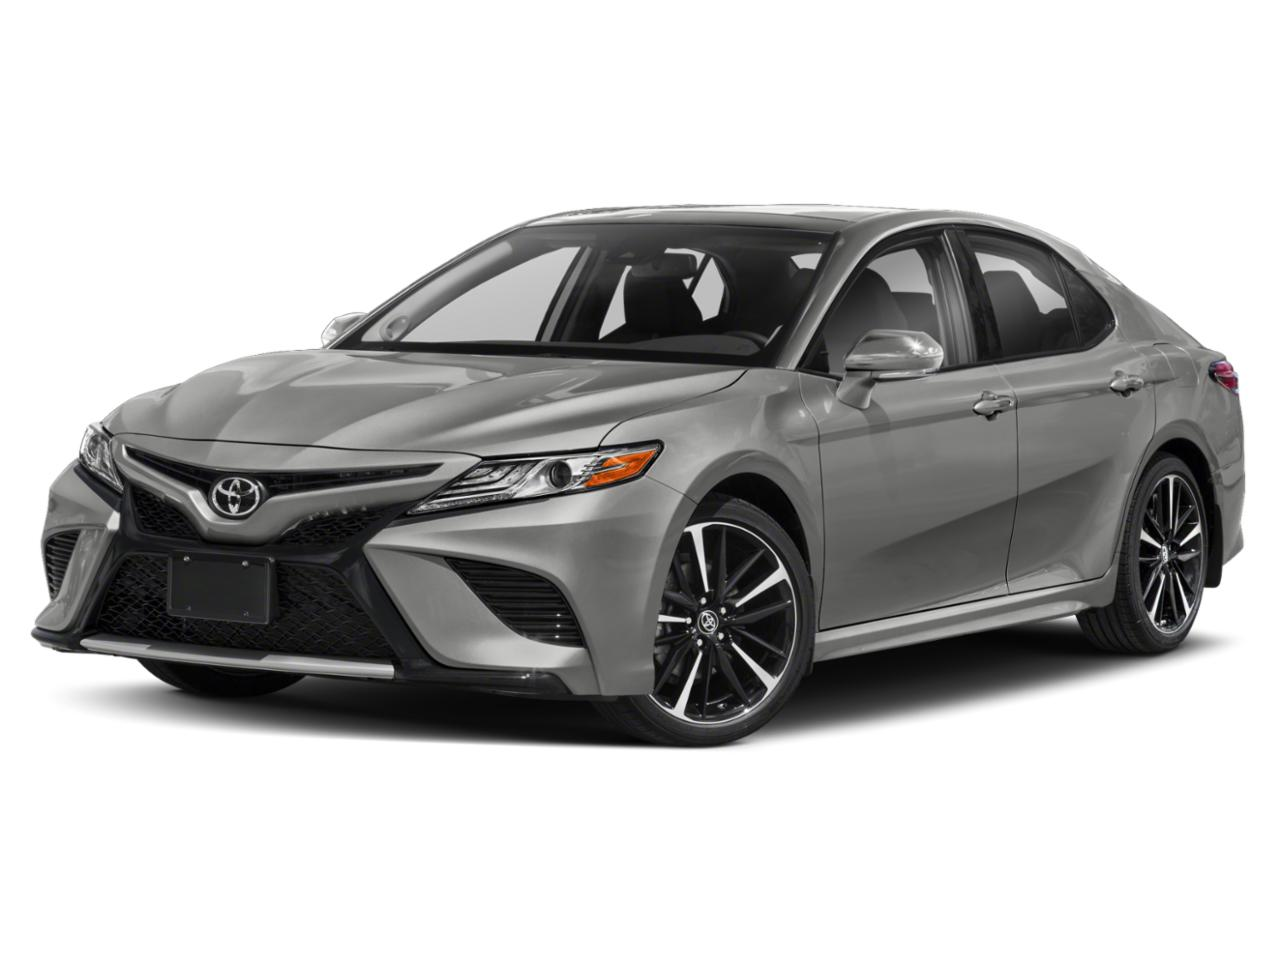 2018 Toyota Camry Vehicle Photo in Plainfield, IL 60586